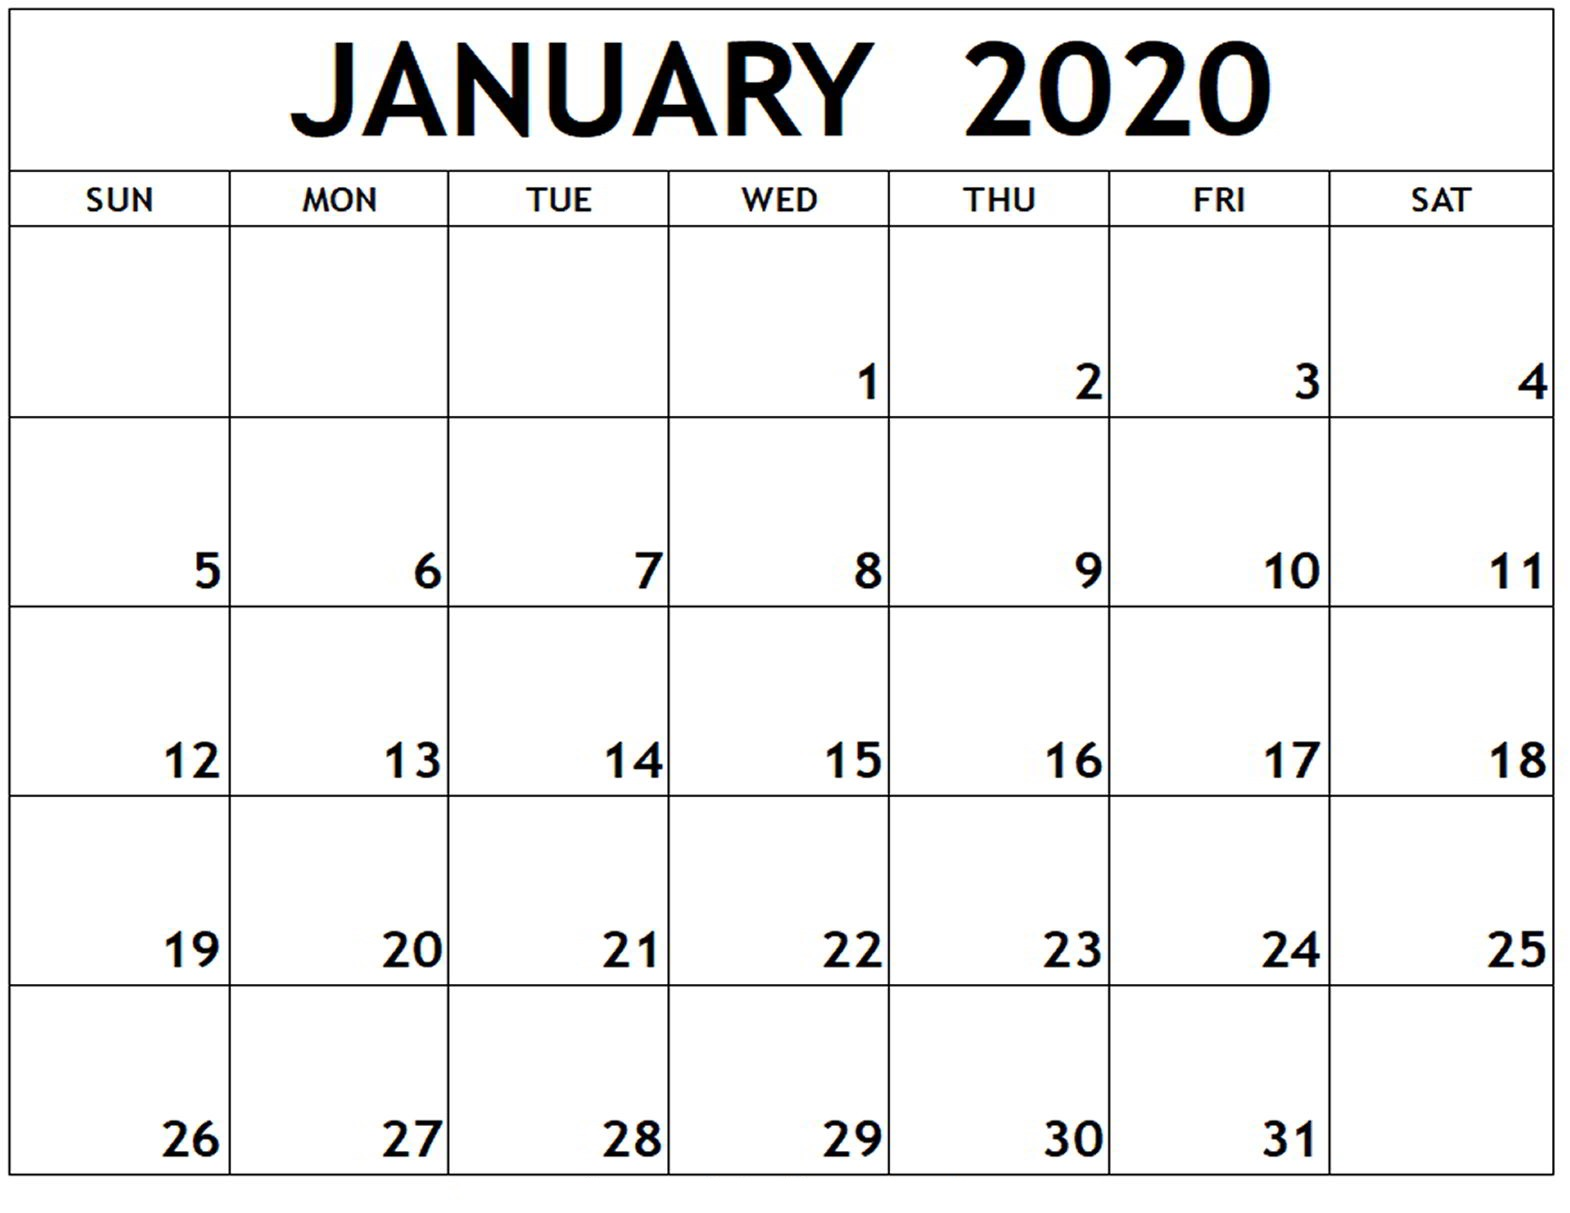 January Calendar 2020 In Word